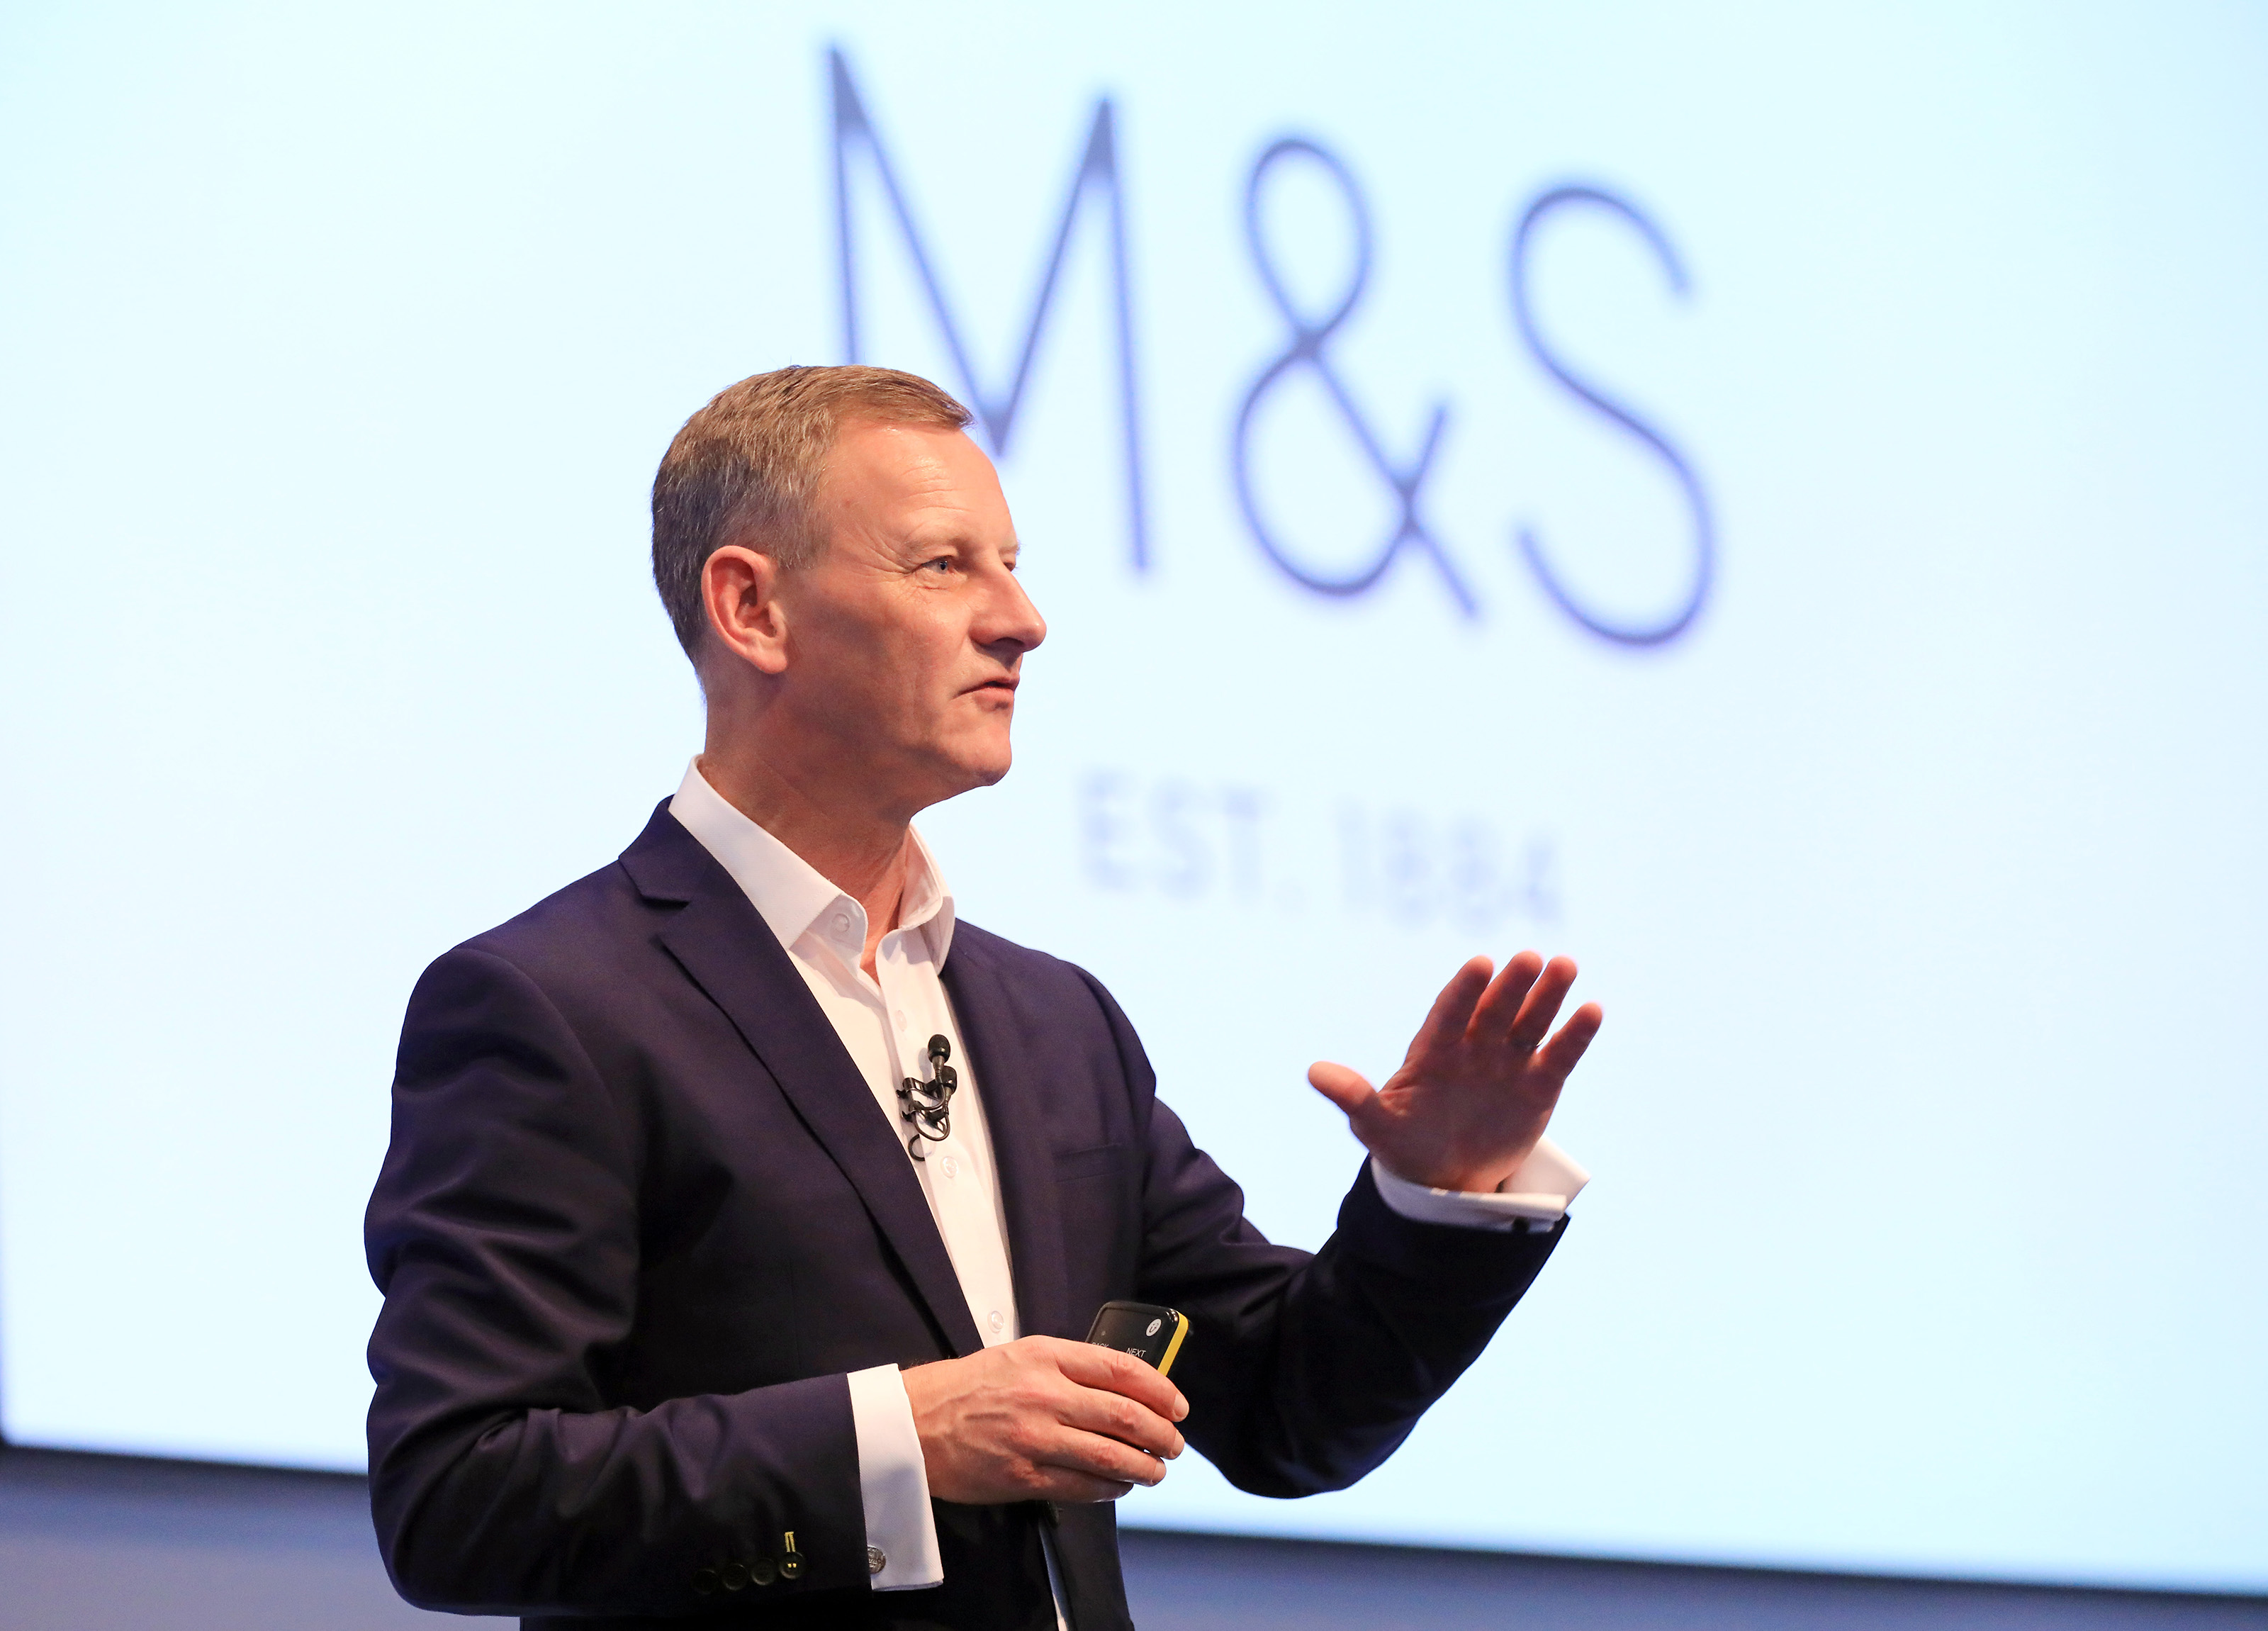 M&S chief executive Steve Rowe (M&S/PA)